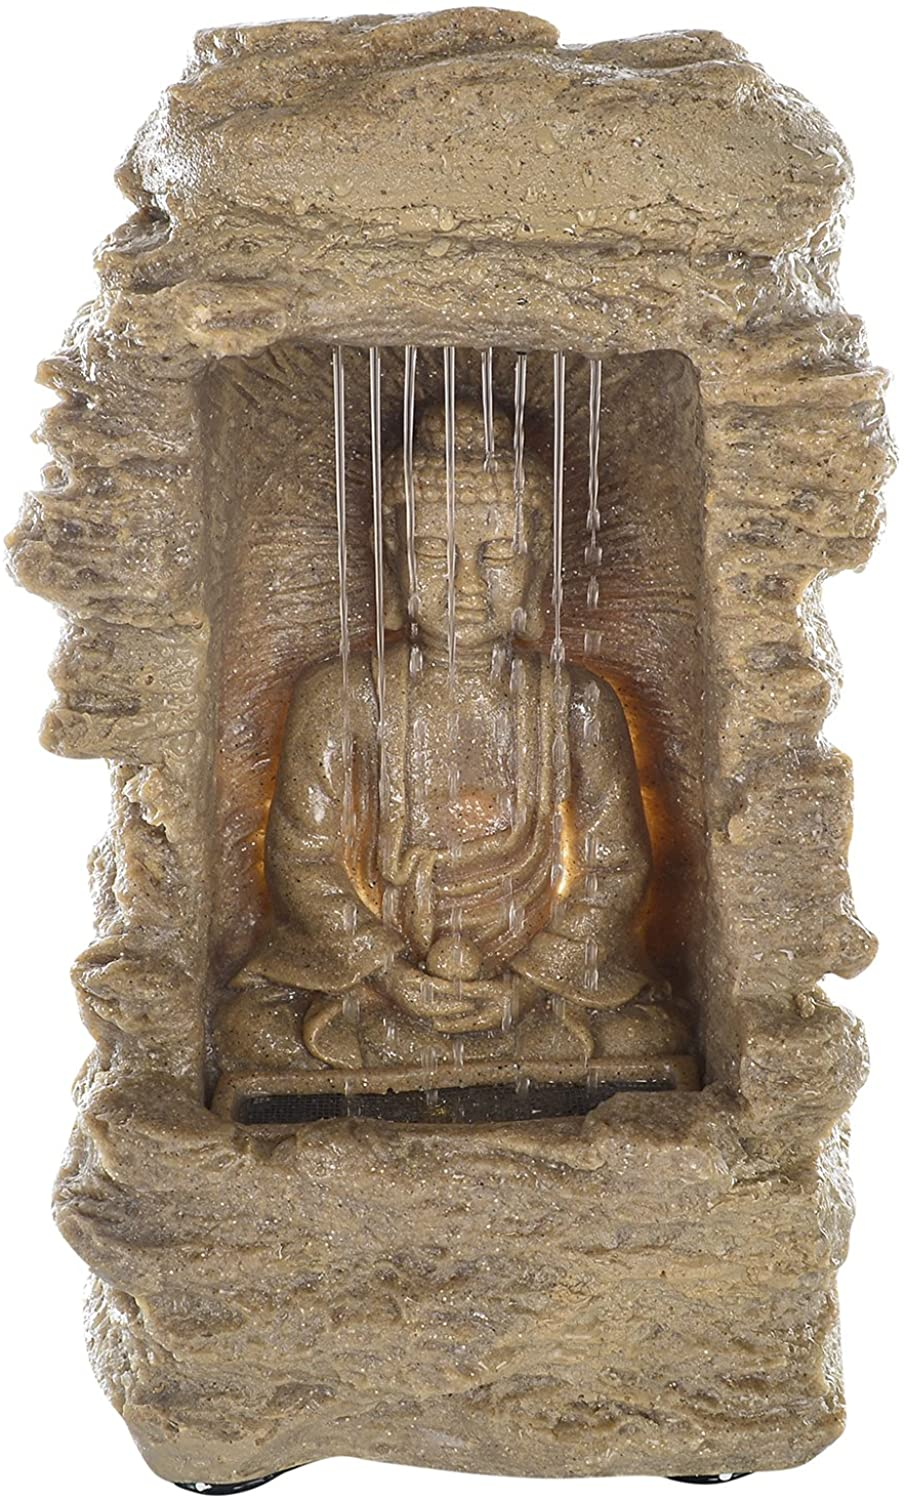 JB KIARA TEXTILES Buddha Tabletop Water Fountain for Indoor and Outdoor Green